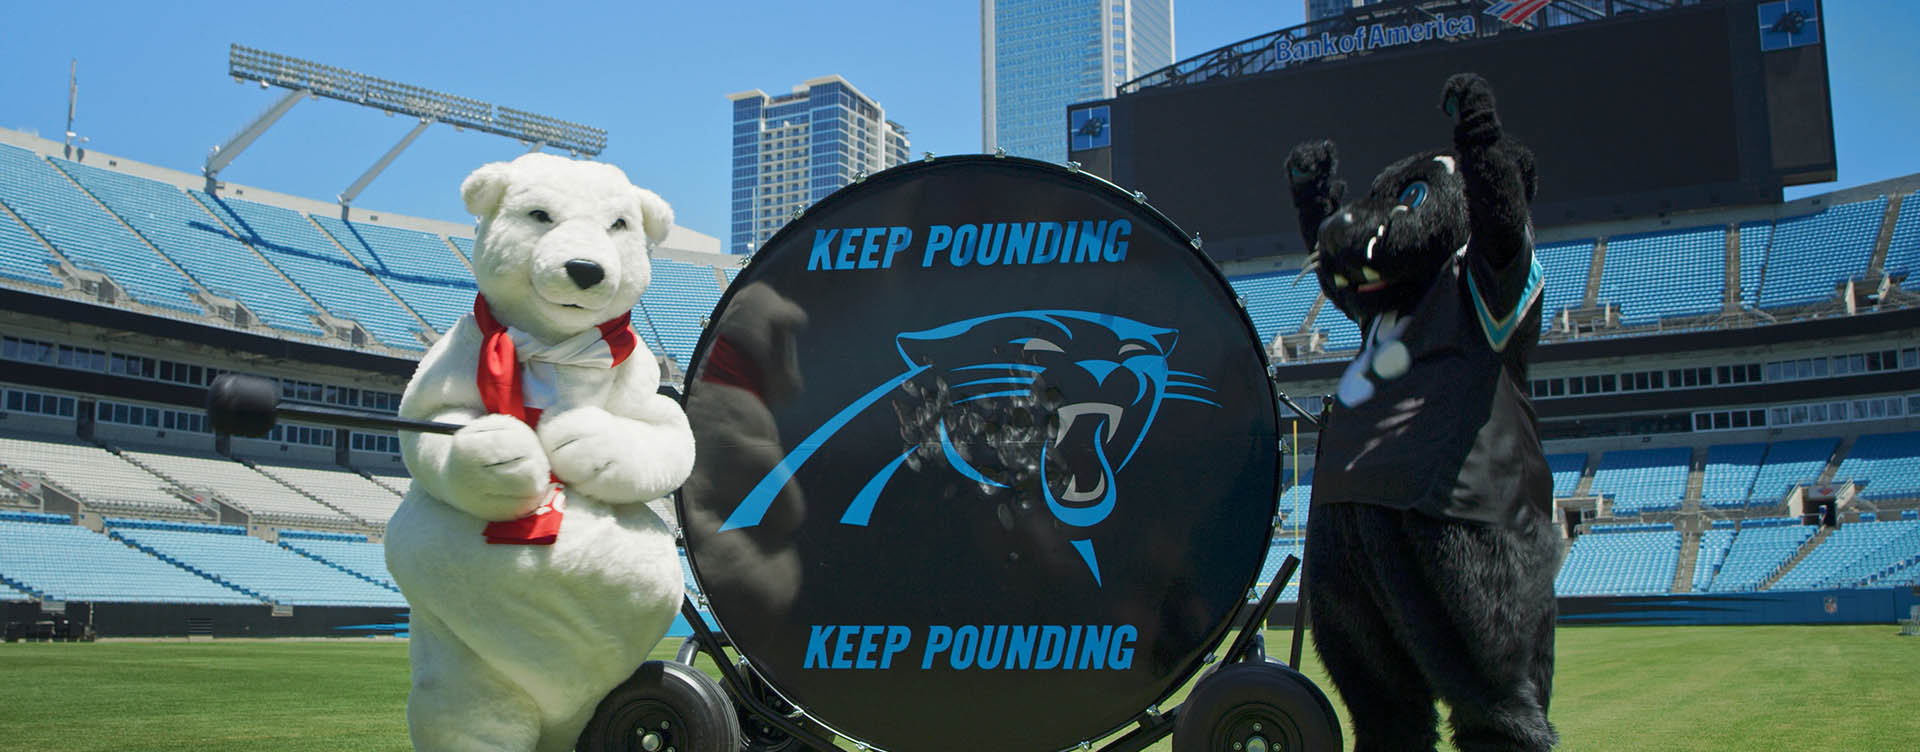 coca cola polar bear and carolina panthers sir purr beat drum at bank of america stadium with nowsay film crew in charlotte north carolina